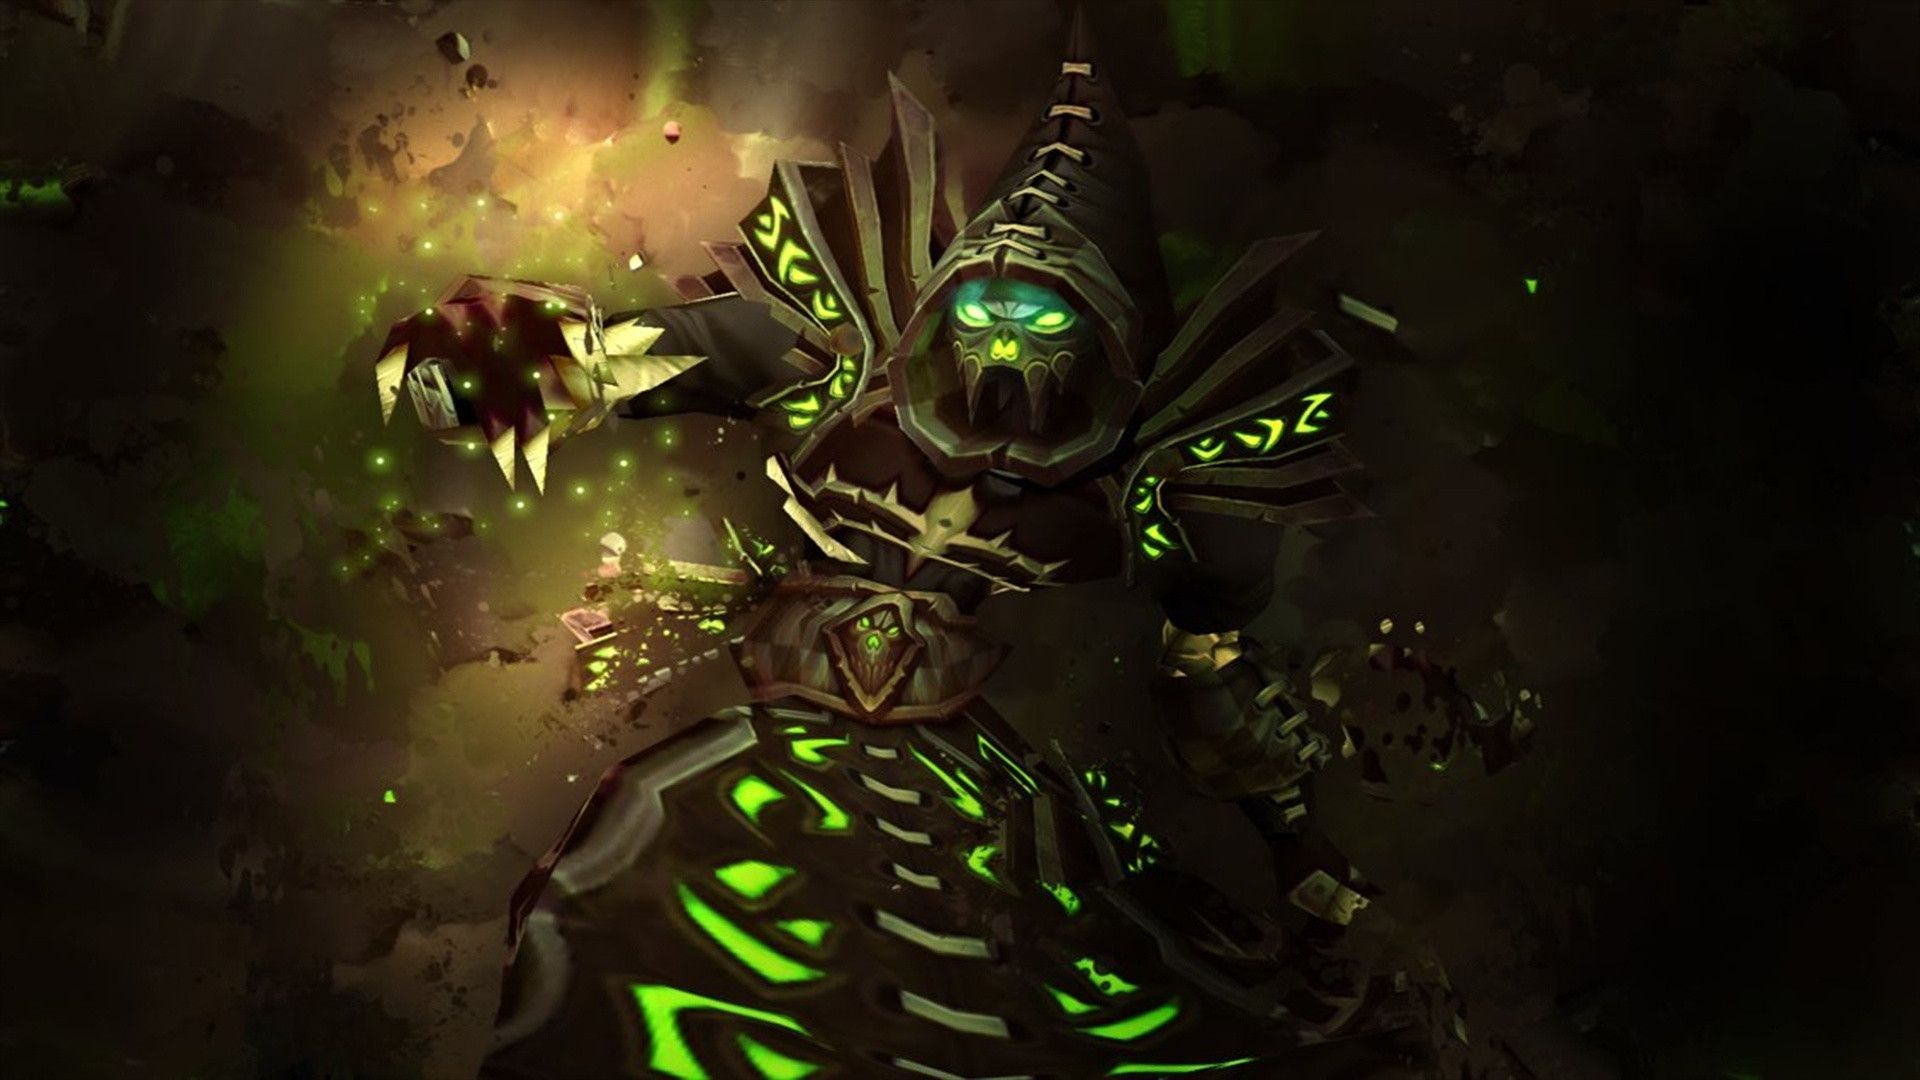 World Of Warcraft Cataclysm Hd Desktop Wallpaper High